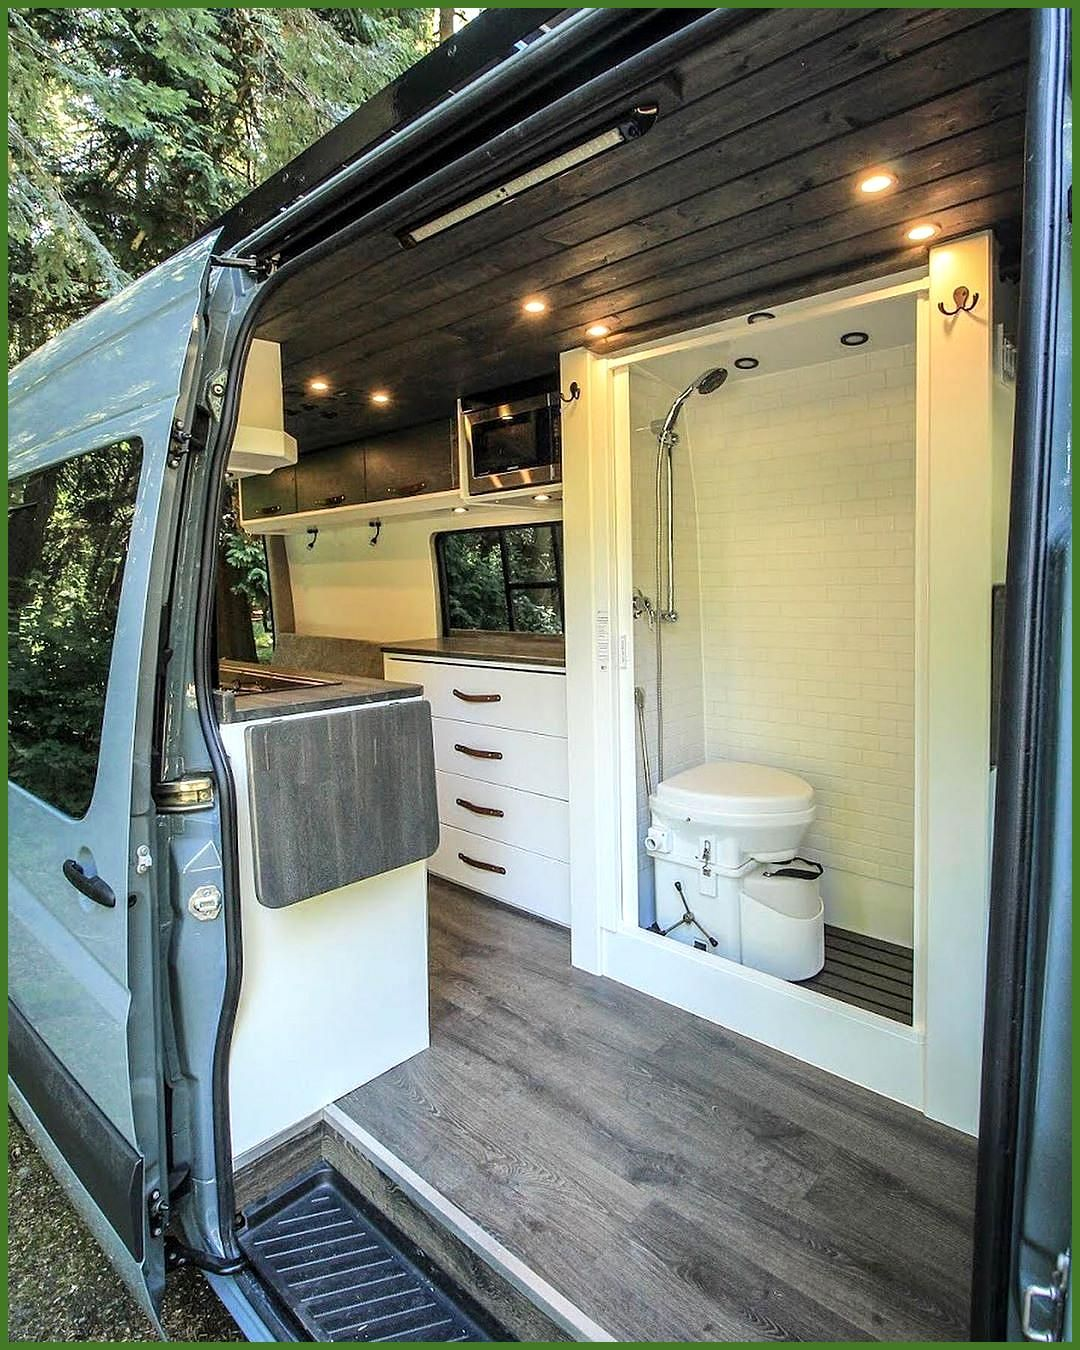 15 Perfect Small Campers Marvelous 15 Perfect Small Campers camperlife co  The ideal way to decide